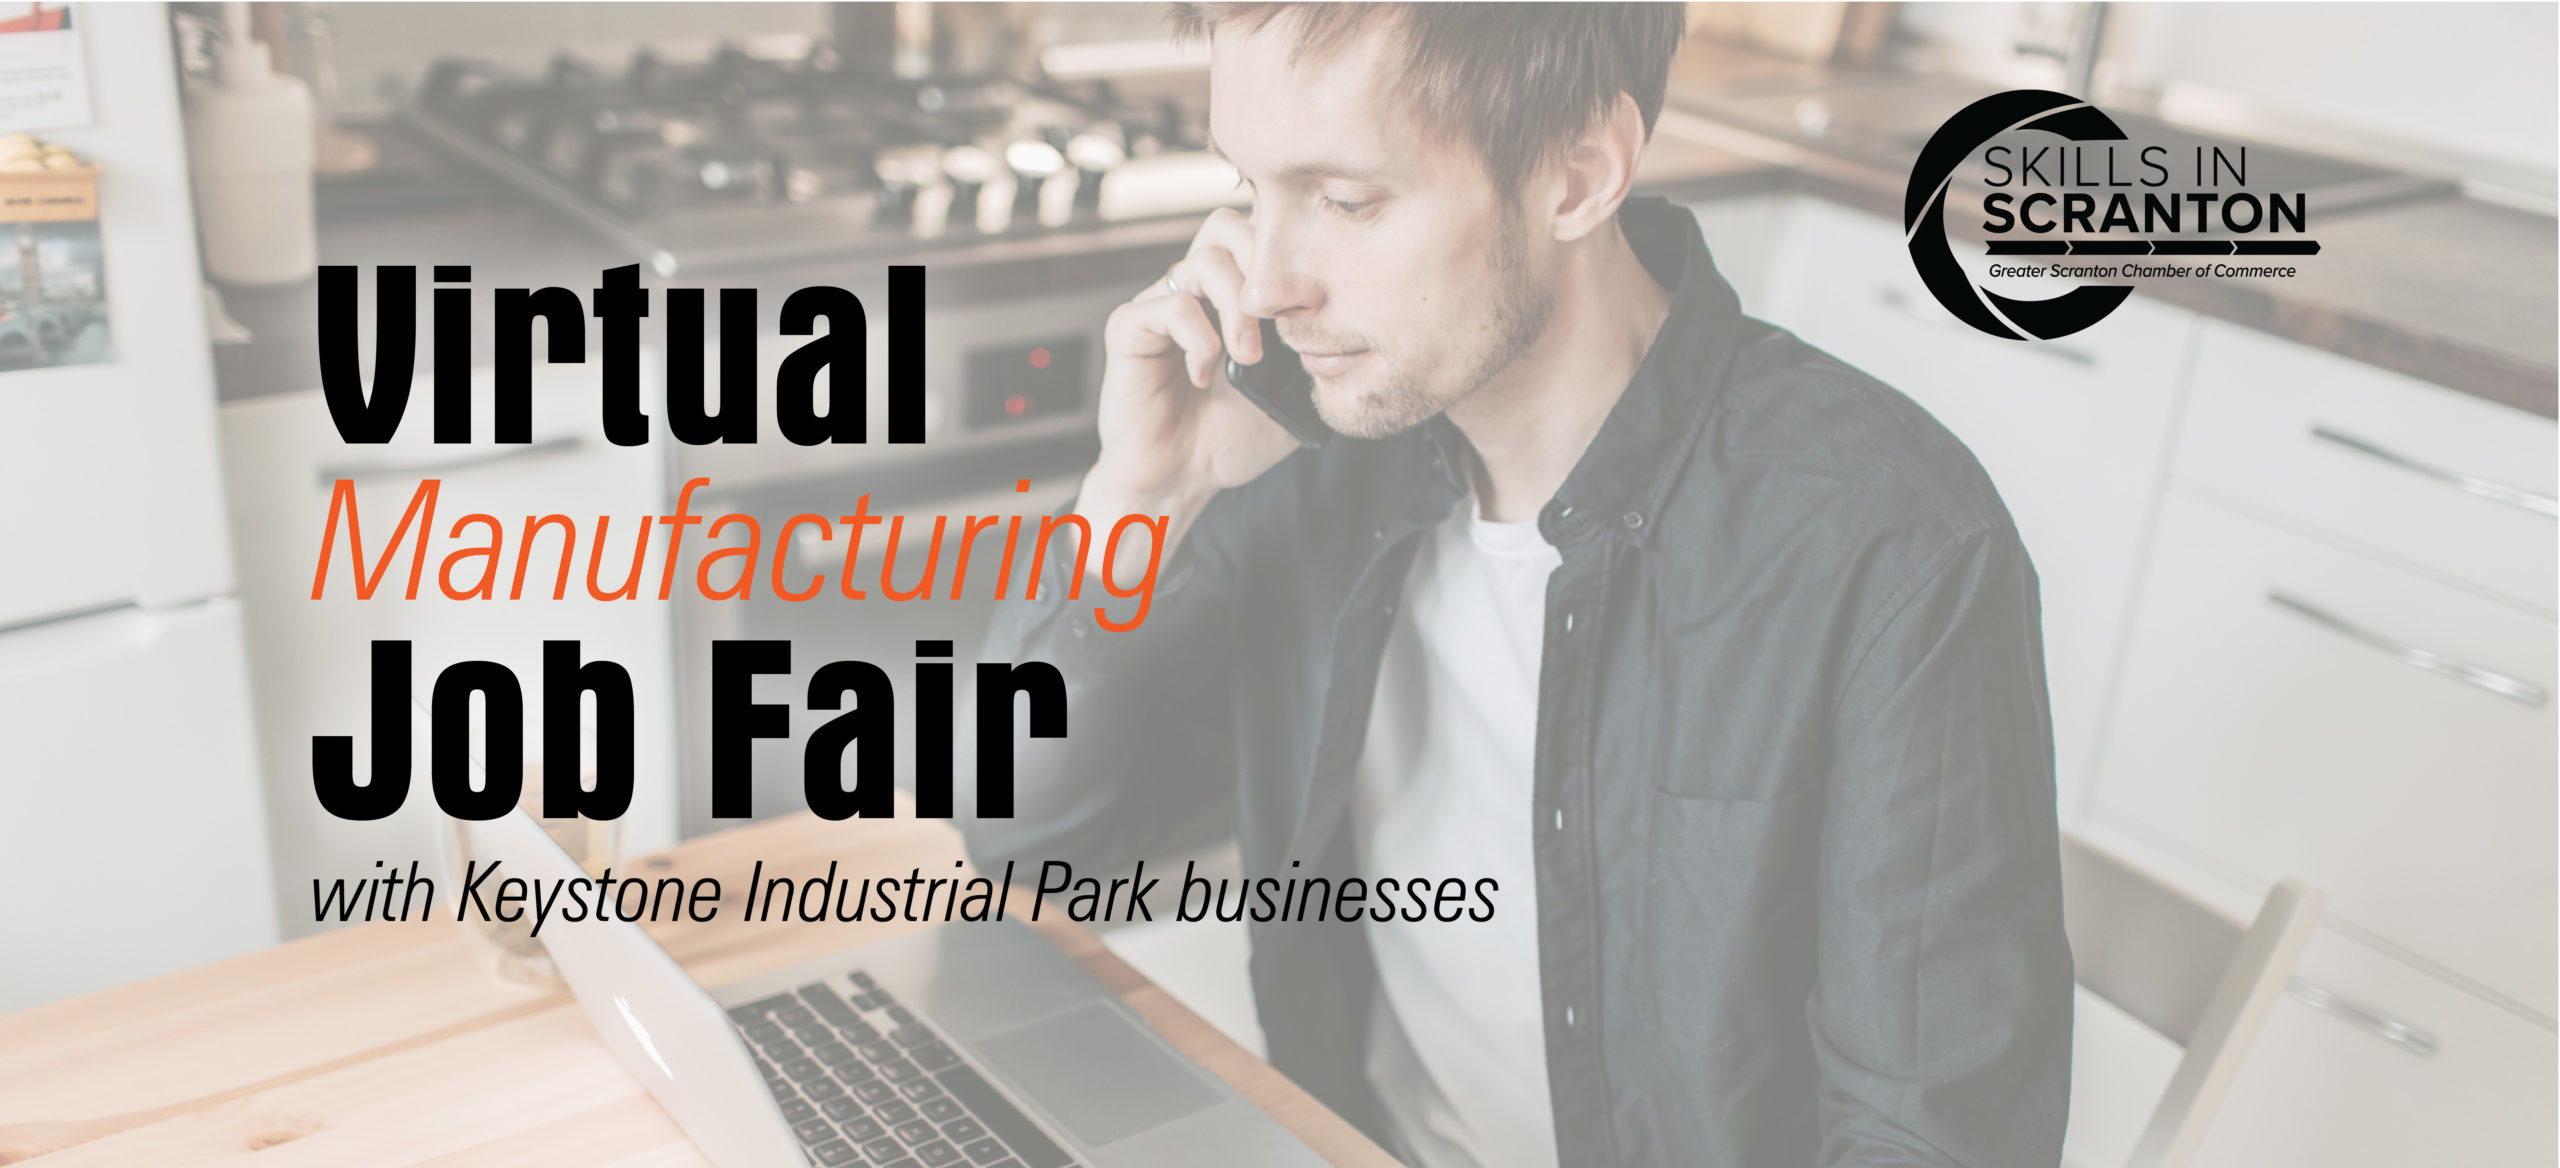 Virtual Manufacturing Job Fair with Keystone Industrial Park